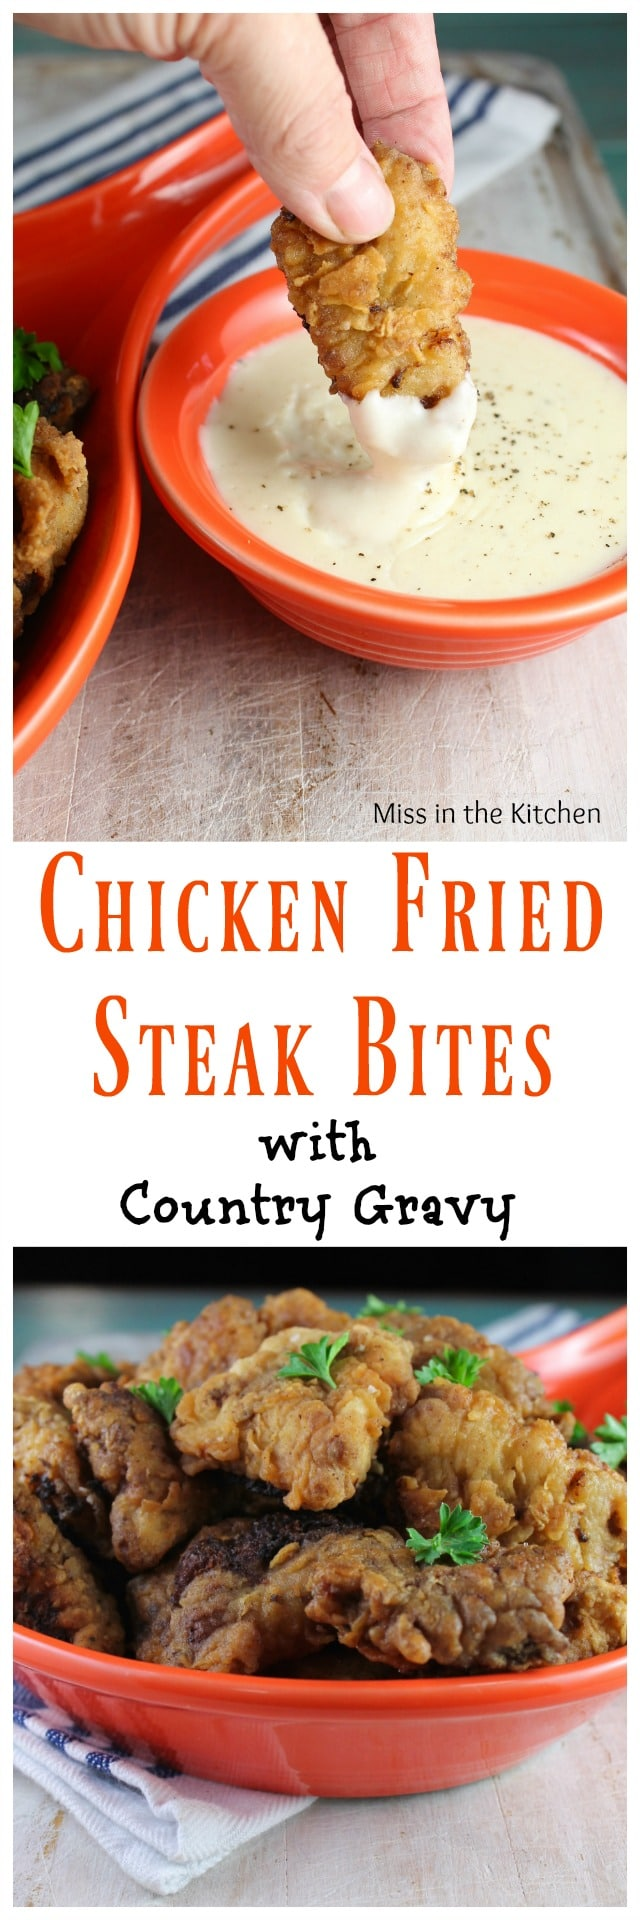 Recipe for Chicken Fried Steak Bites for the best comfort food meal! Get the recipe at MissintheKitchen.com